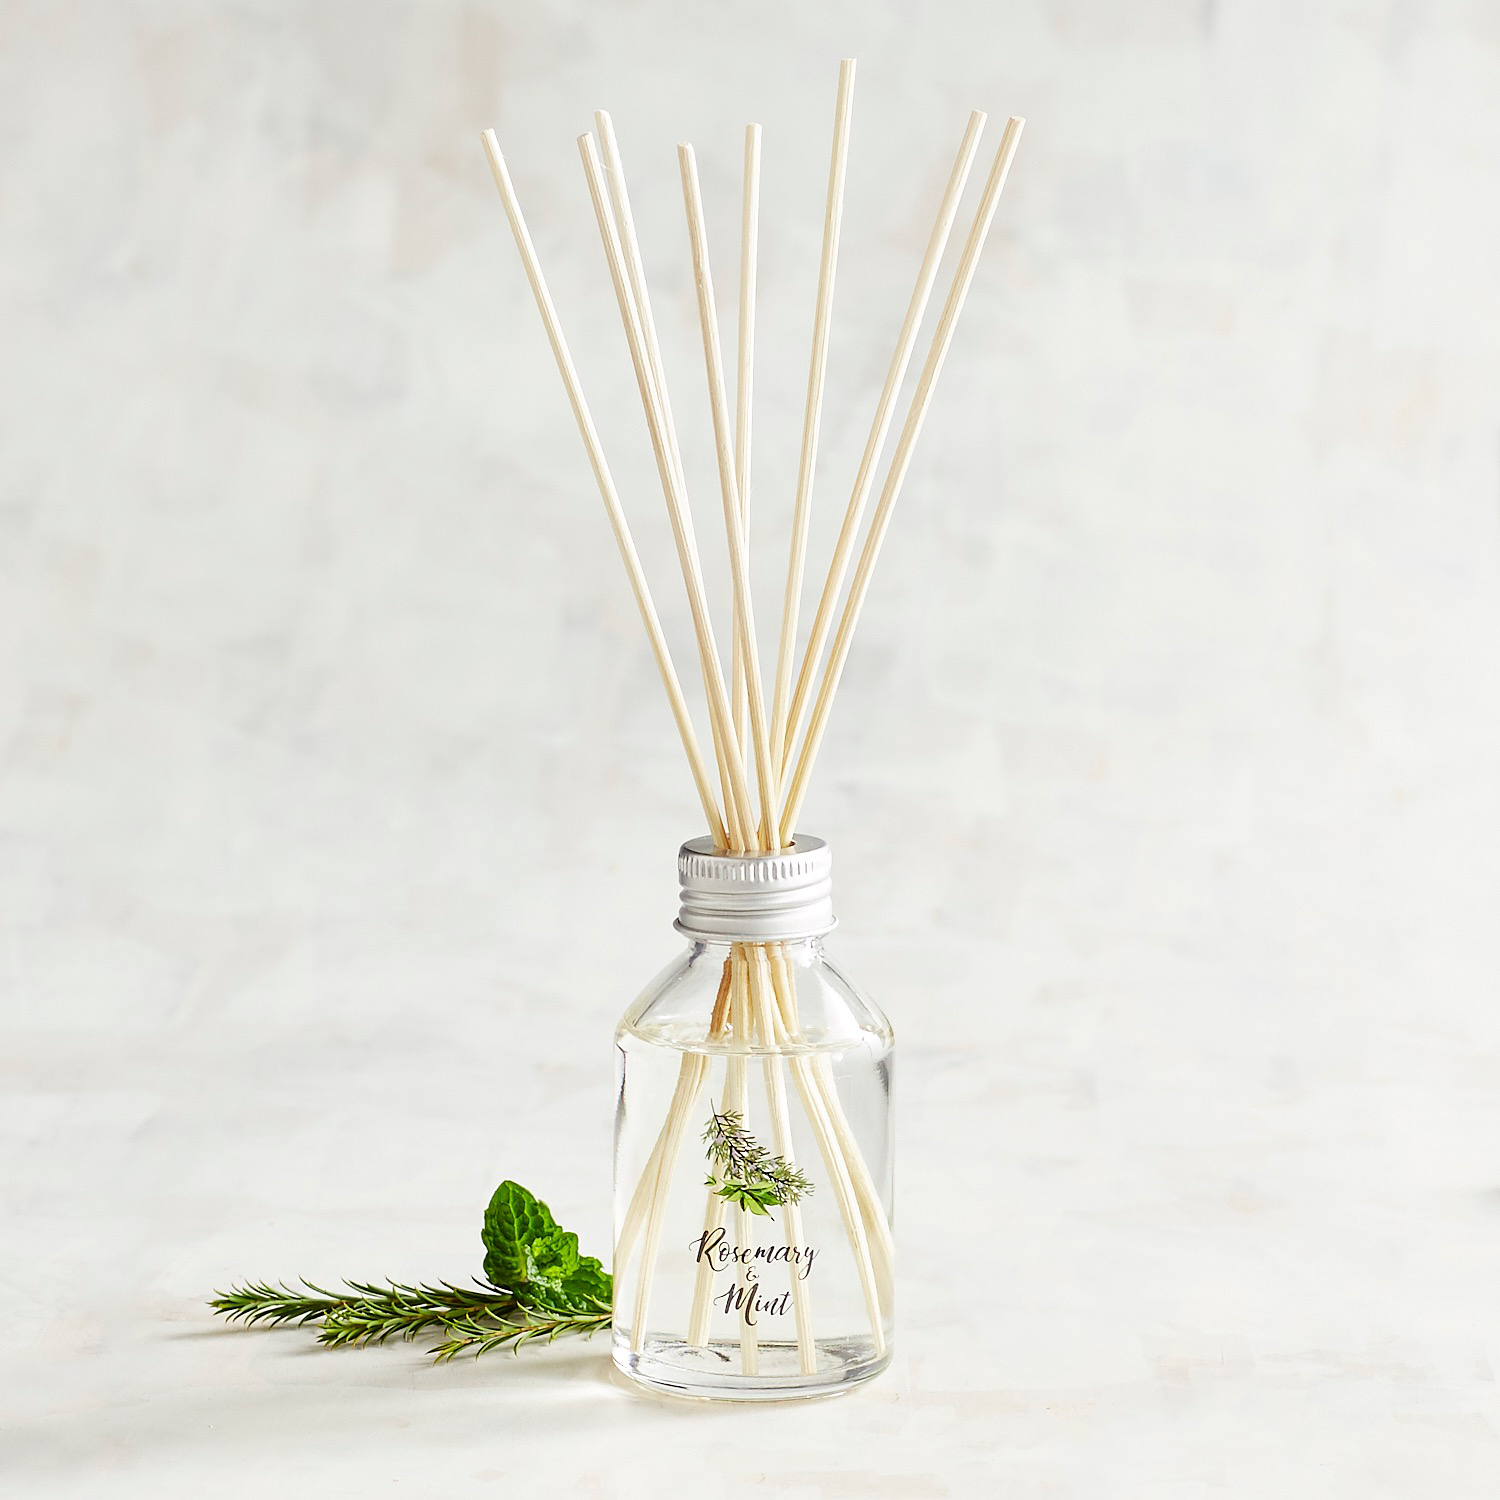 Rosemary & Mint Reed Diffuser